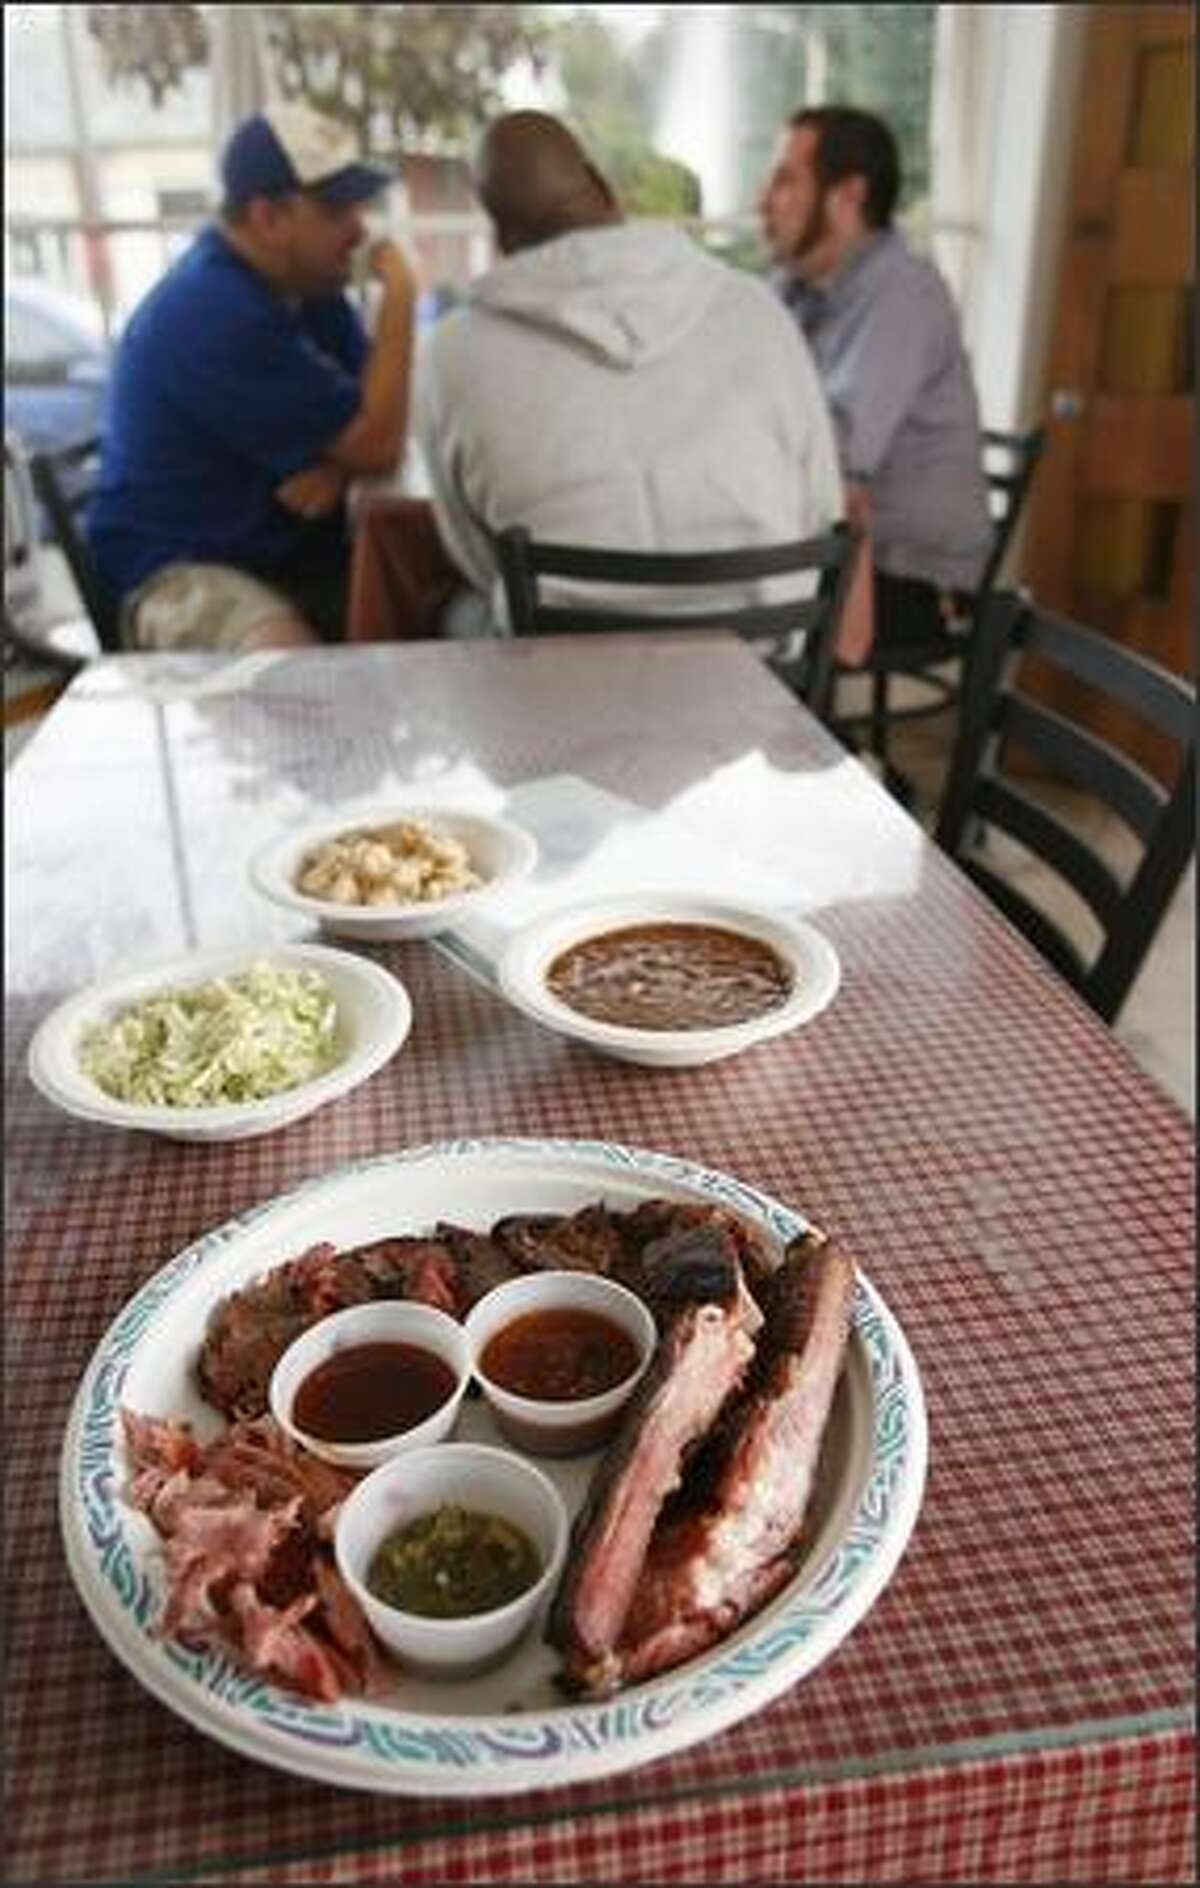 The half sampler, with brisket, pork shoulder, ribs, flank steak and three sauces, plus coleslaw, potato salad and baked beans, costs $14.25.